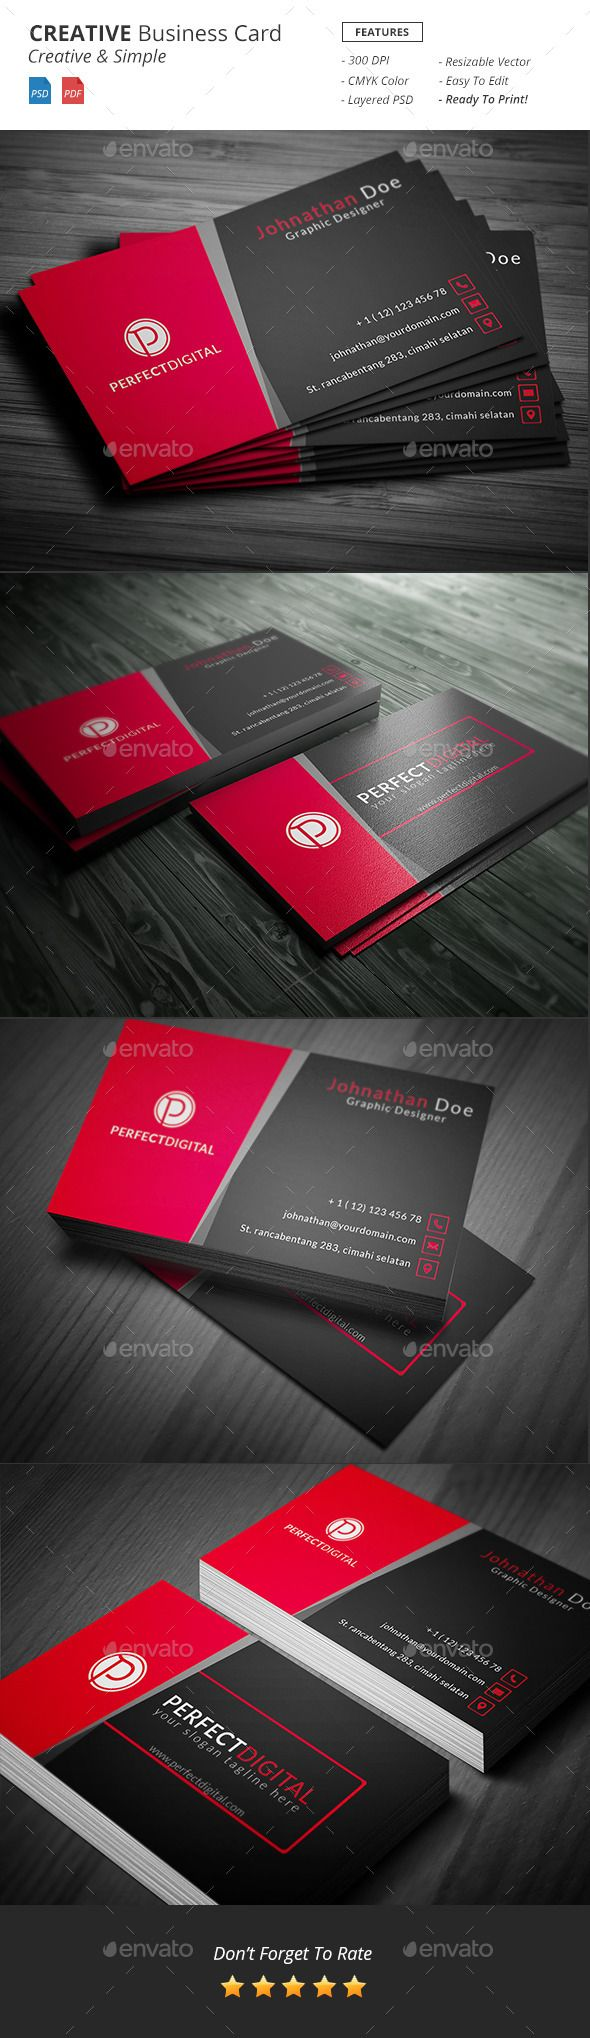 9 best yes photoshop psd images on pinterest font logo for Business card template photoshop cs6